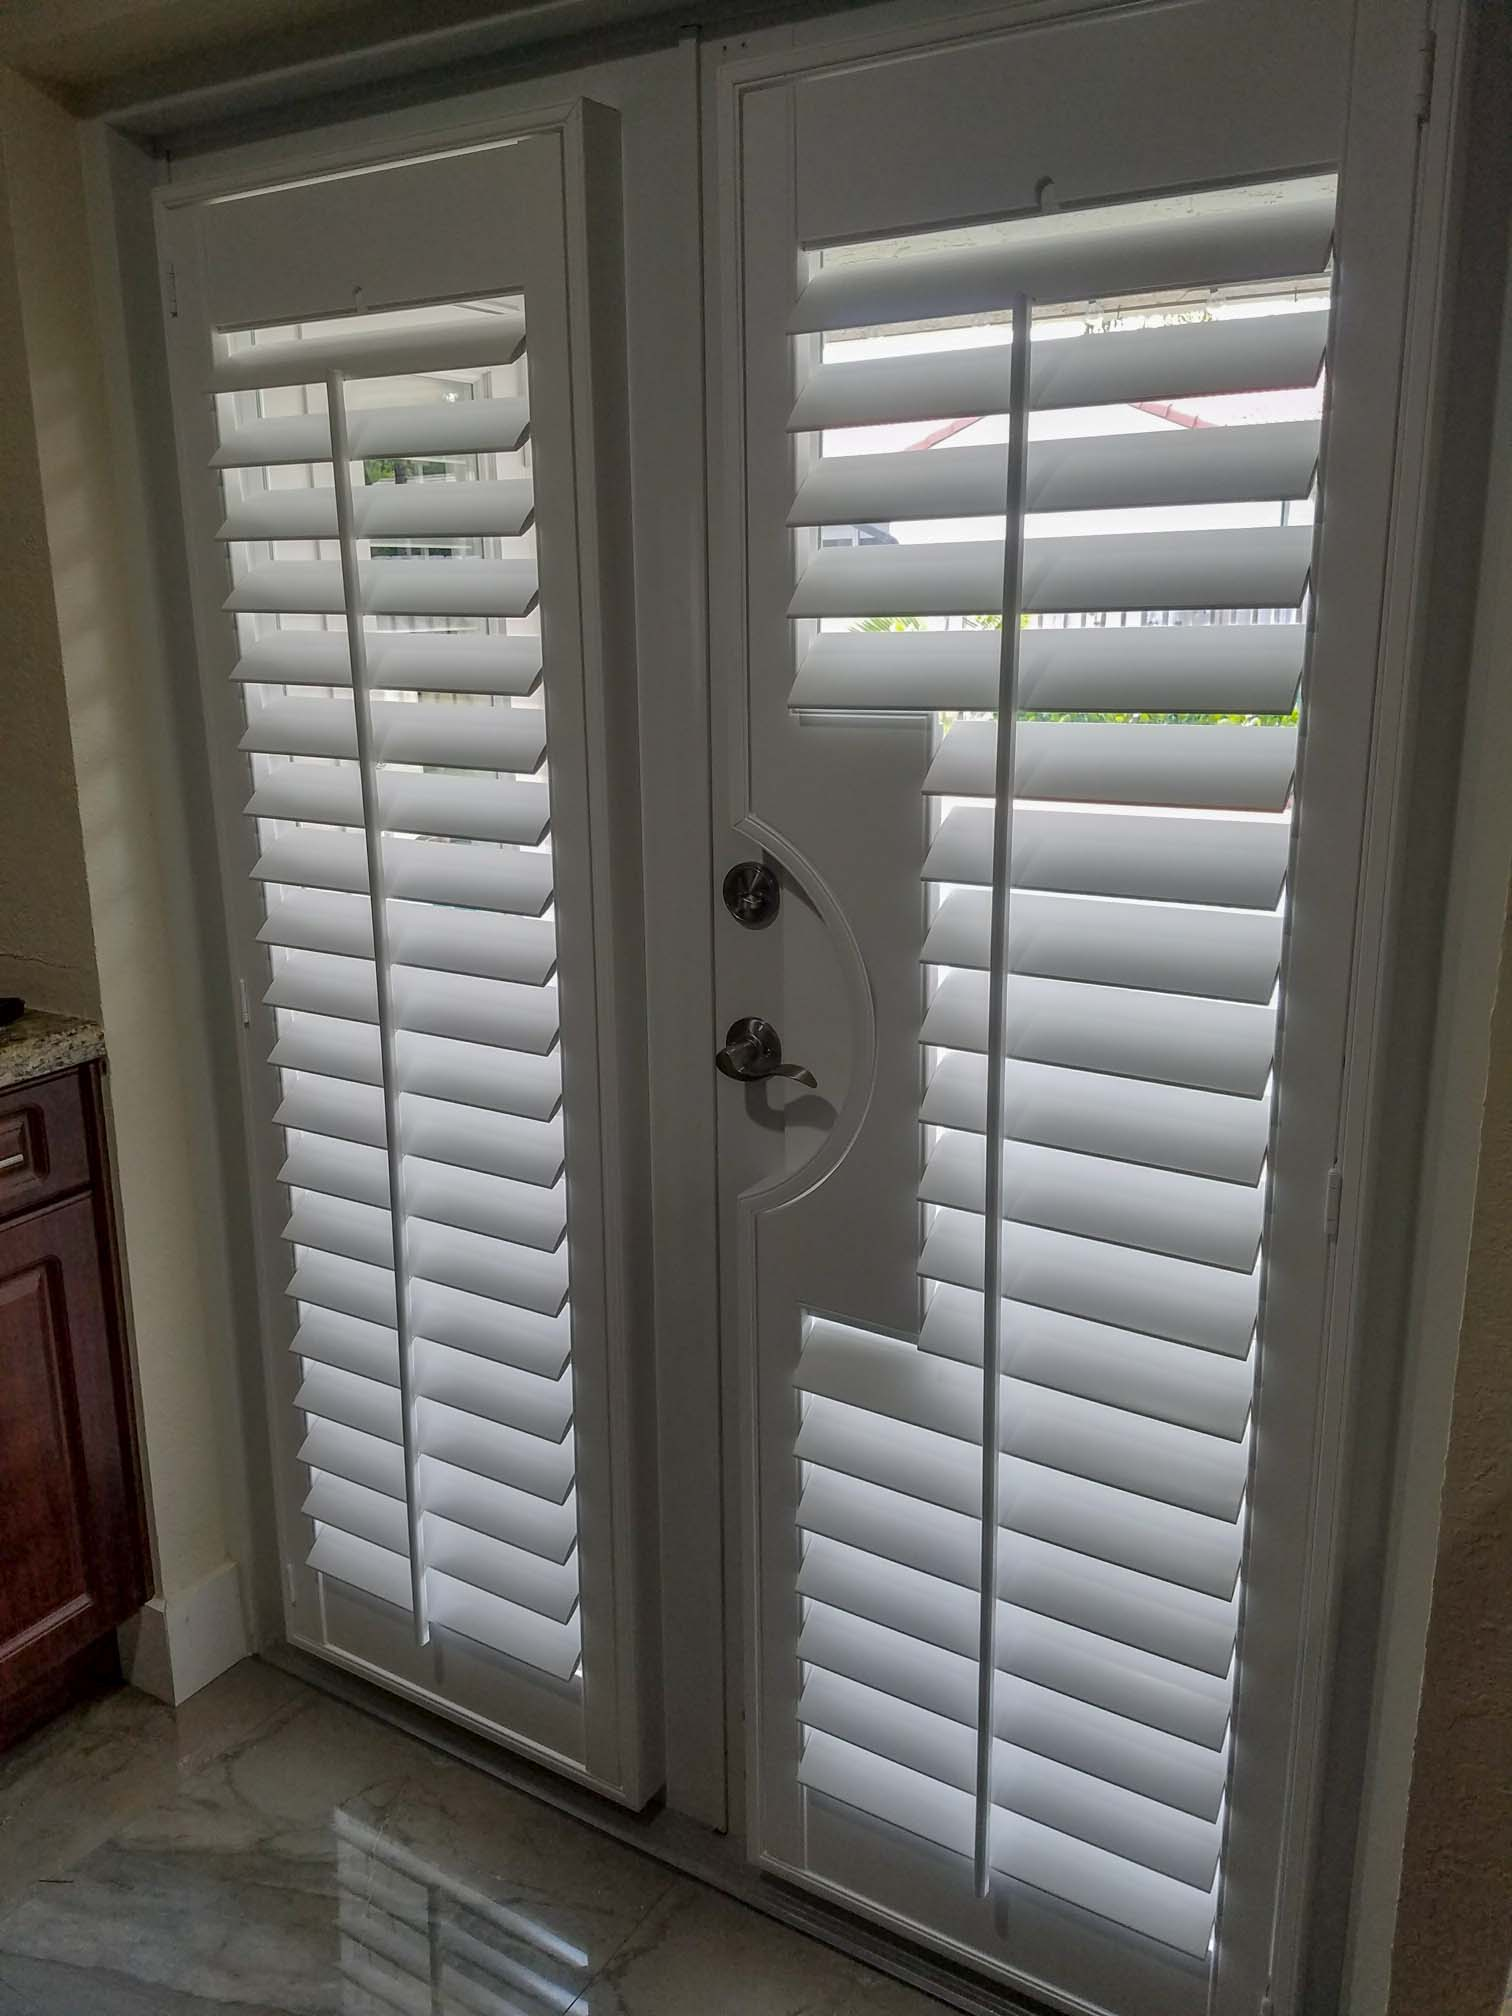 plantation shutters gallery PLANTATION SHUTTERS GALLERY 20171013 140557